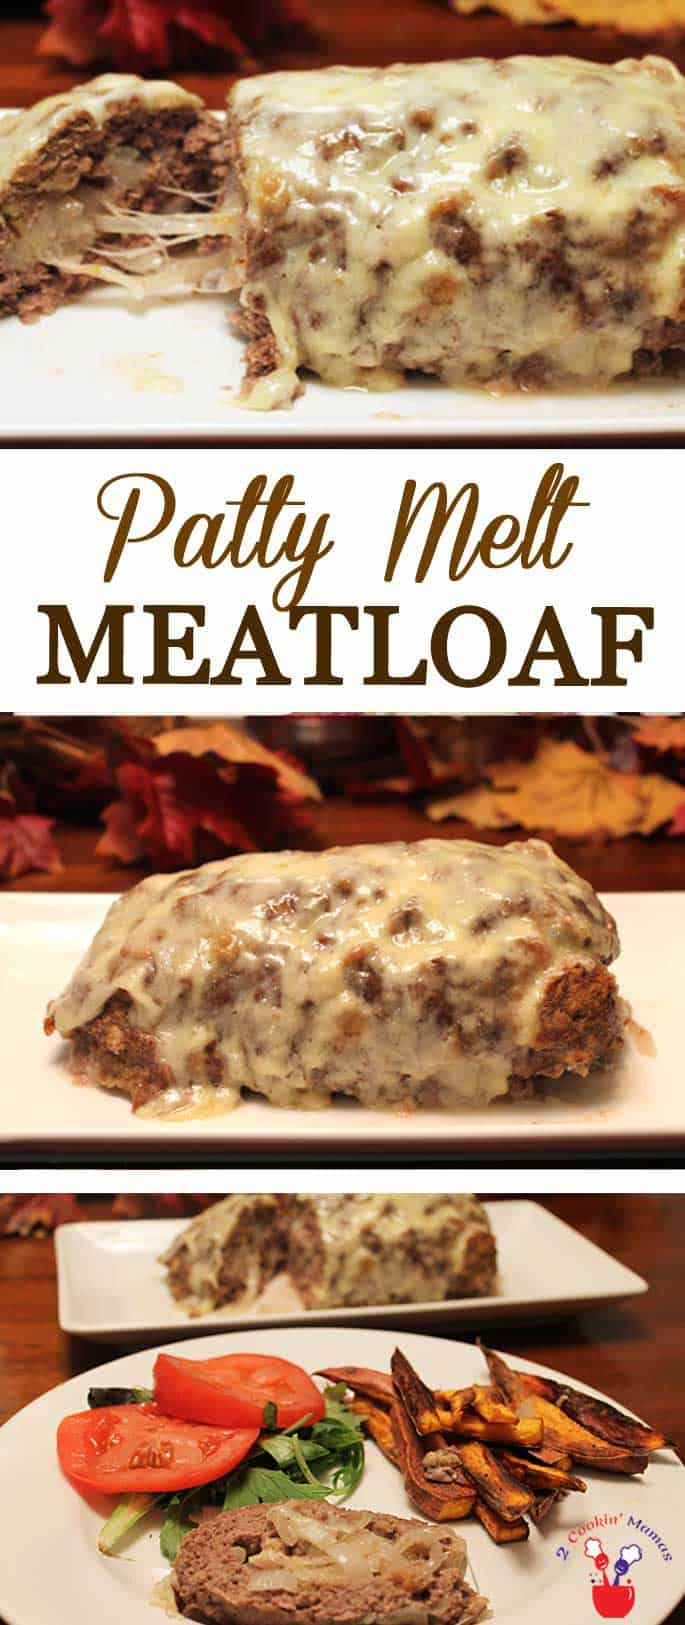 Patty Melt Meatloaf | 2 Cookin Mamas Love Patty Melts? This awesome patty melt meatloaf has all the flavors of your favorite patty melt, sauteed onions, rye bread & cheese, all rolled into one! #dinner #ground beer #recipe